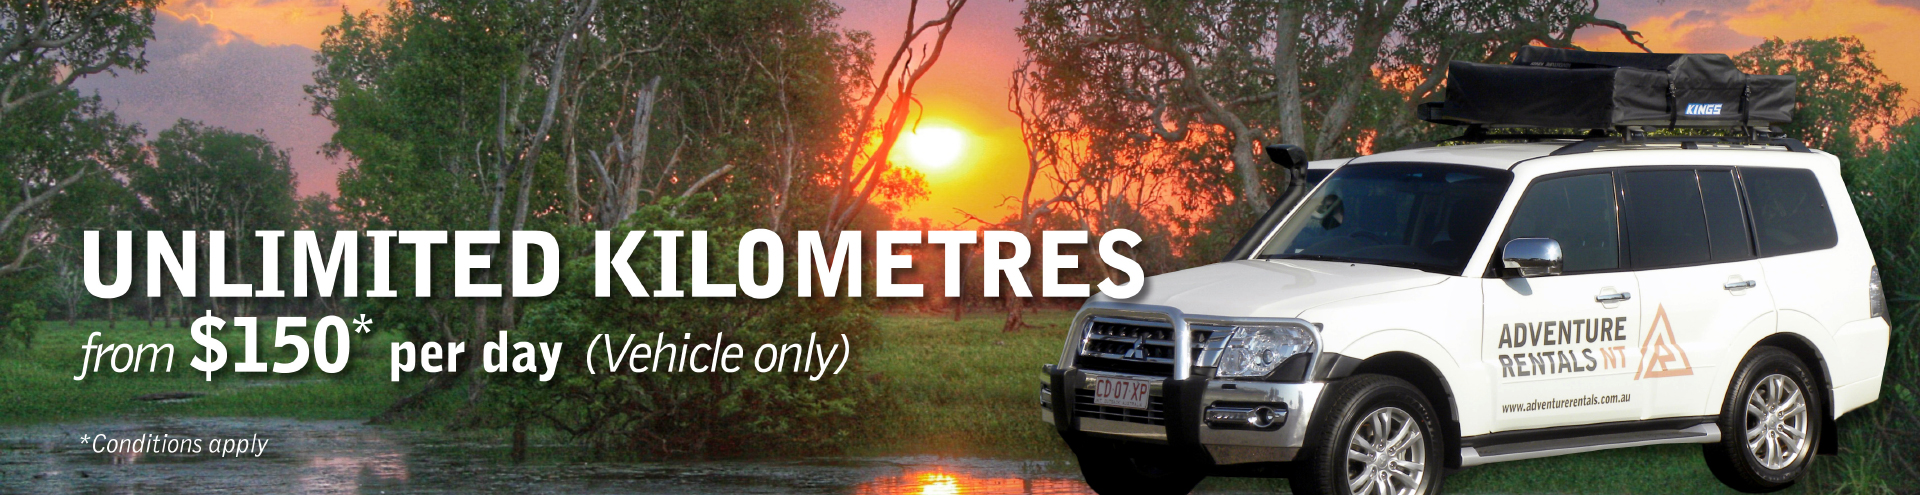 4WD hire with unlimited kilometres!